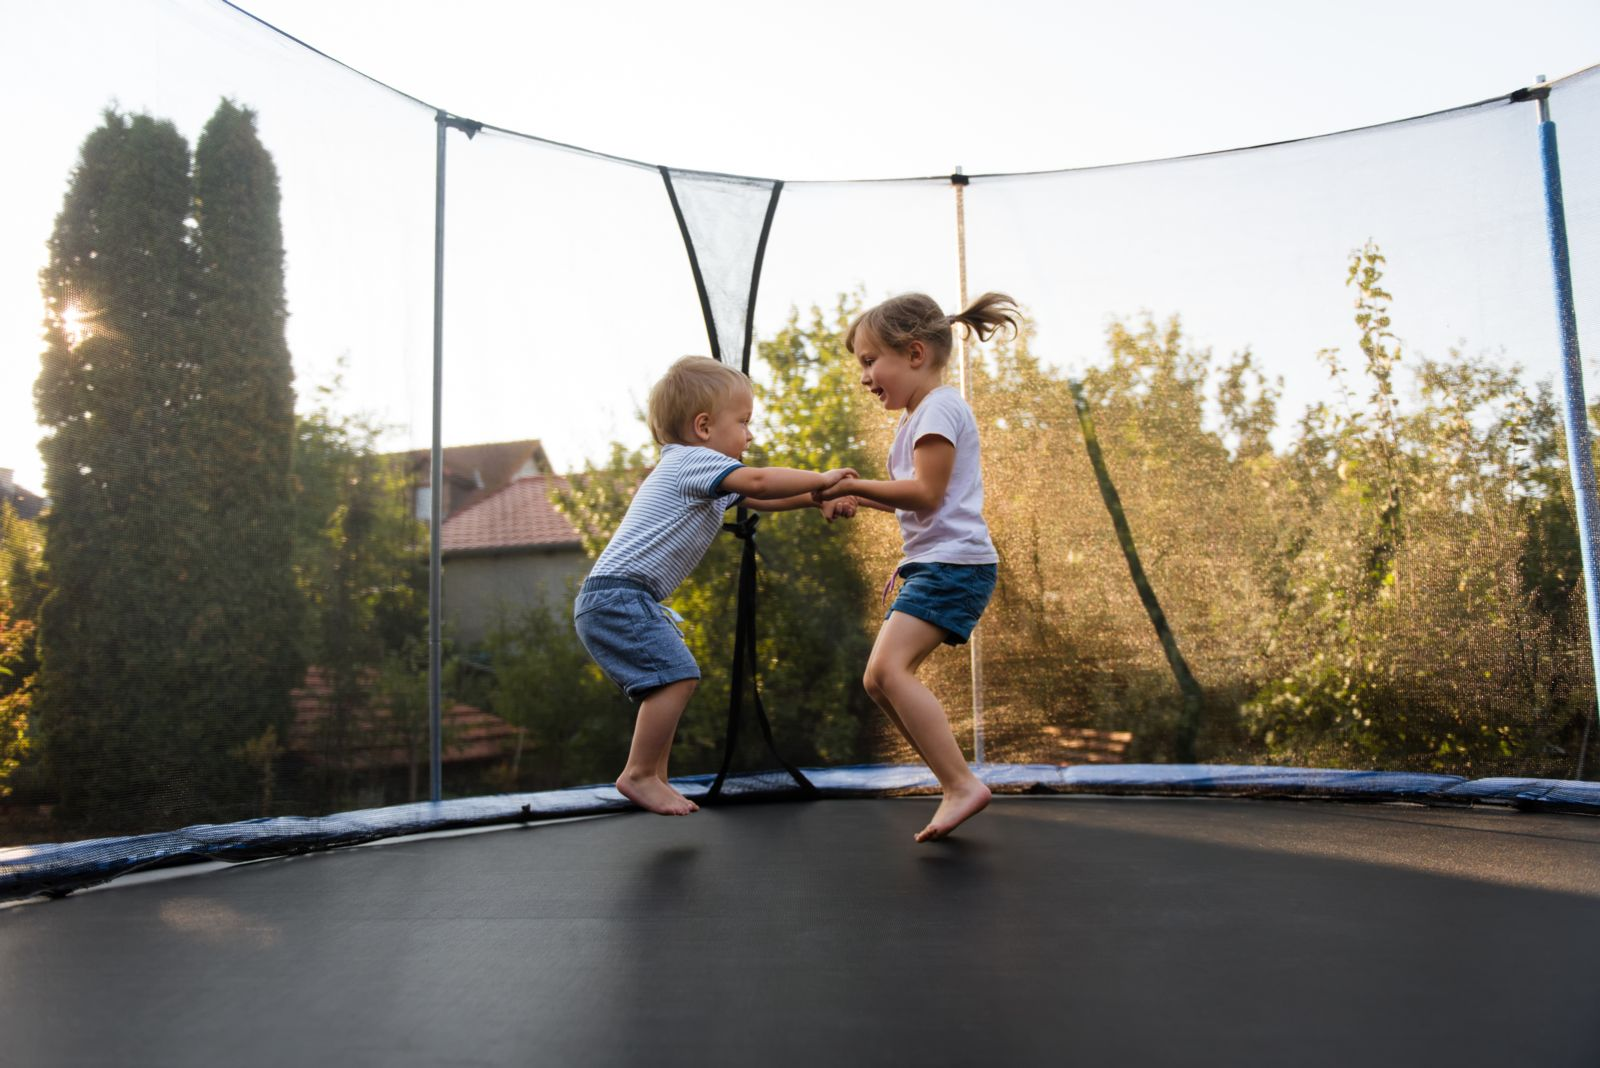 Letting more than one child jump on a trampoline at the same time is simply not safe